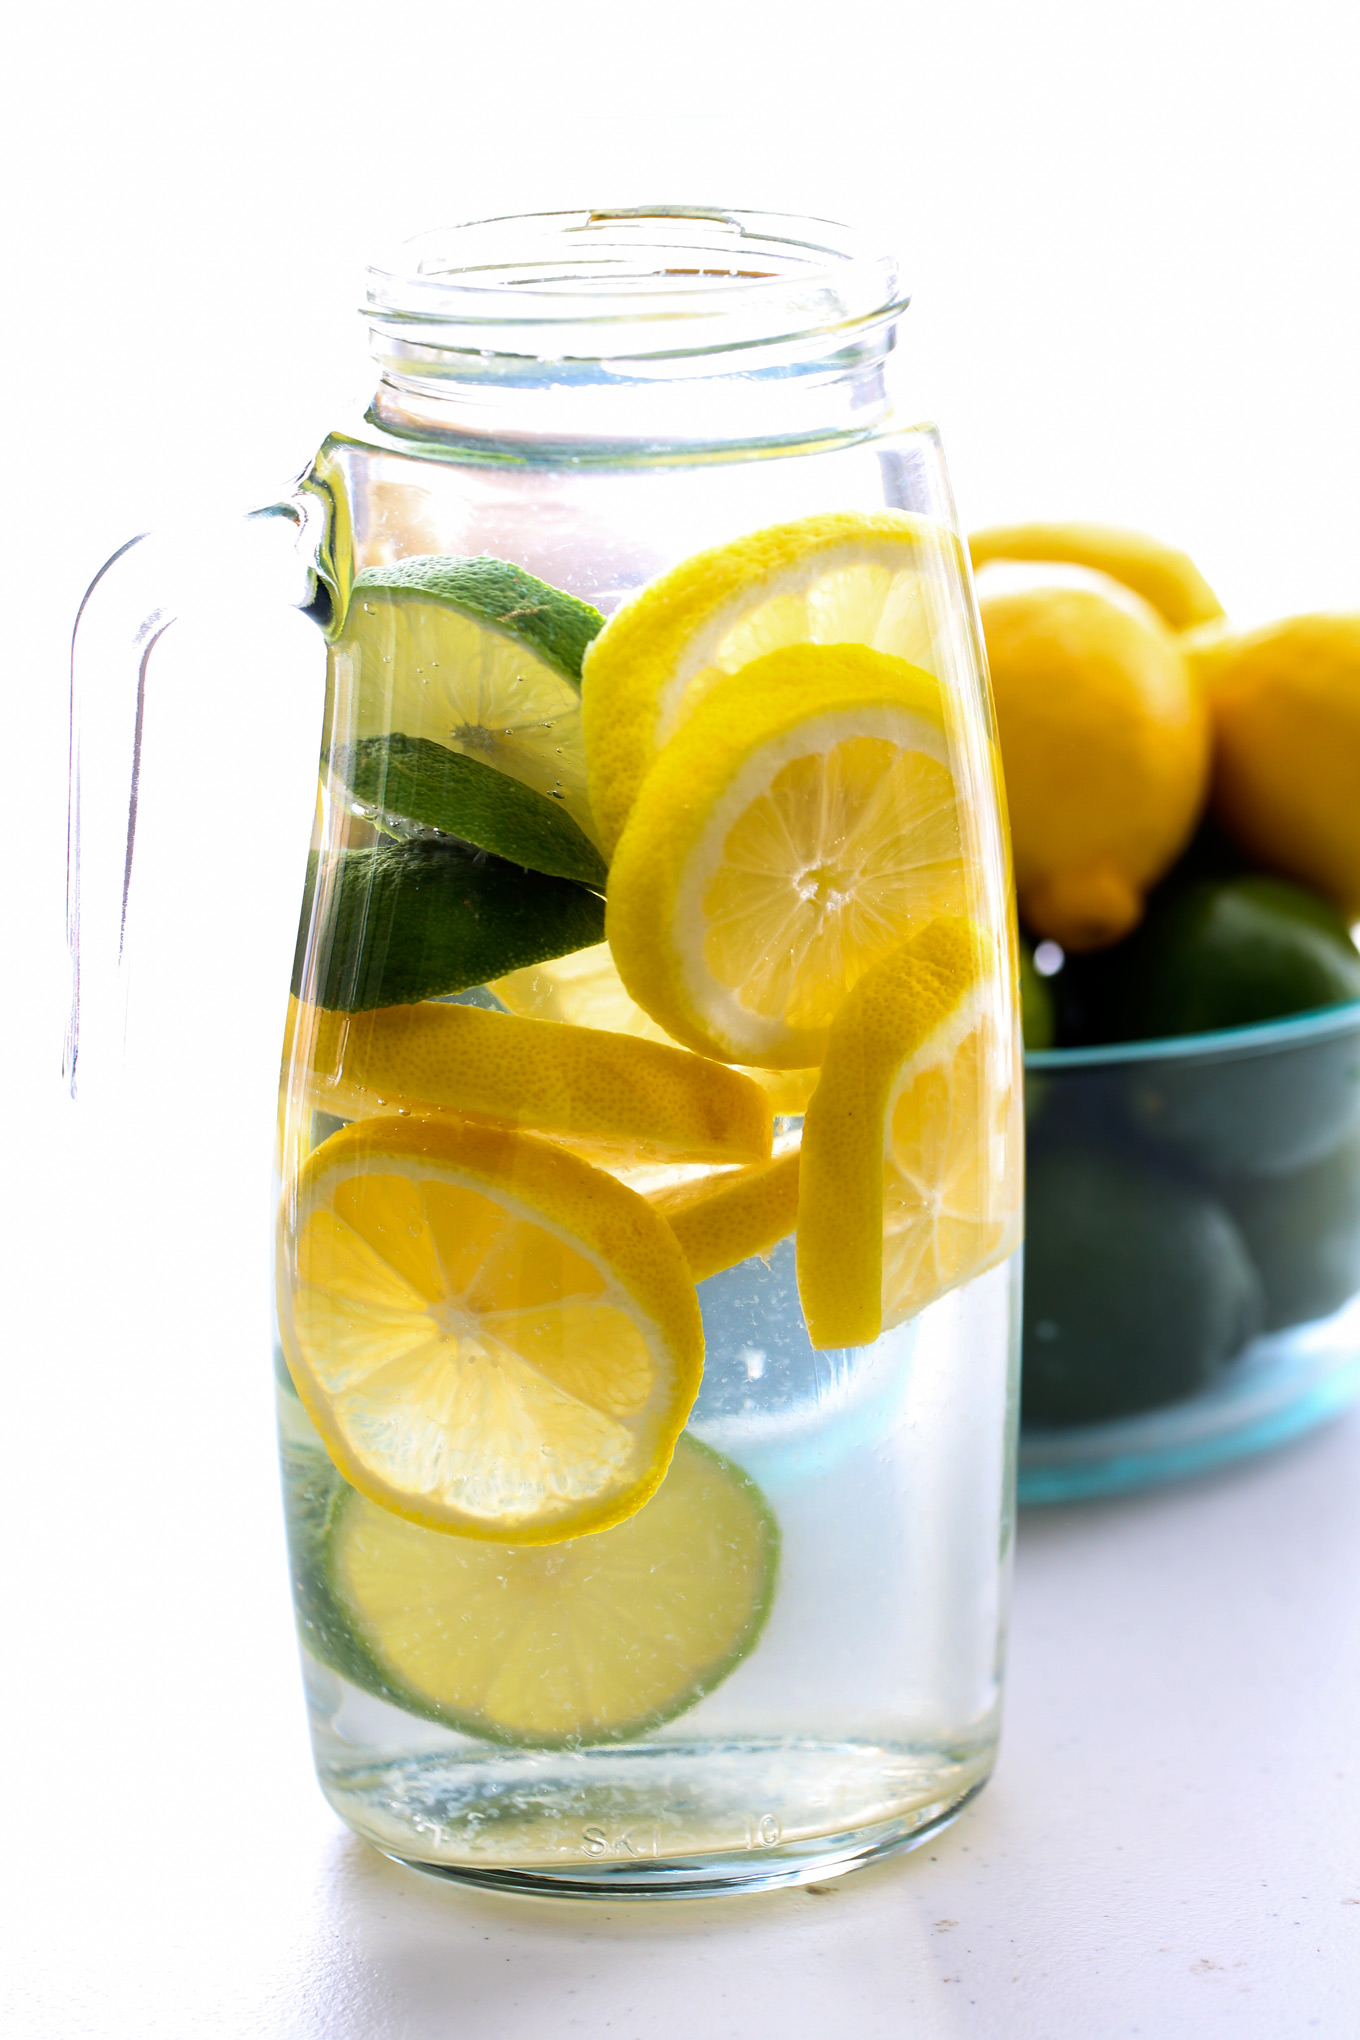 Lemon vs Lime - Differences, Benefits, And Effects On Alkalinity ... | 2040x1360